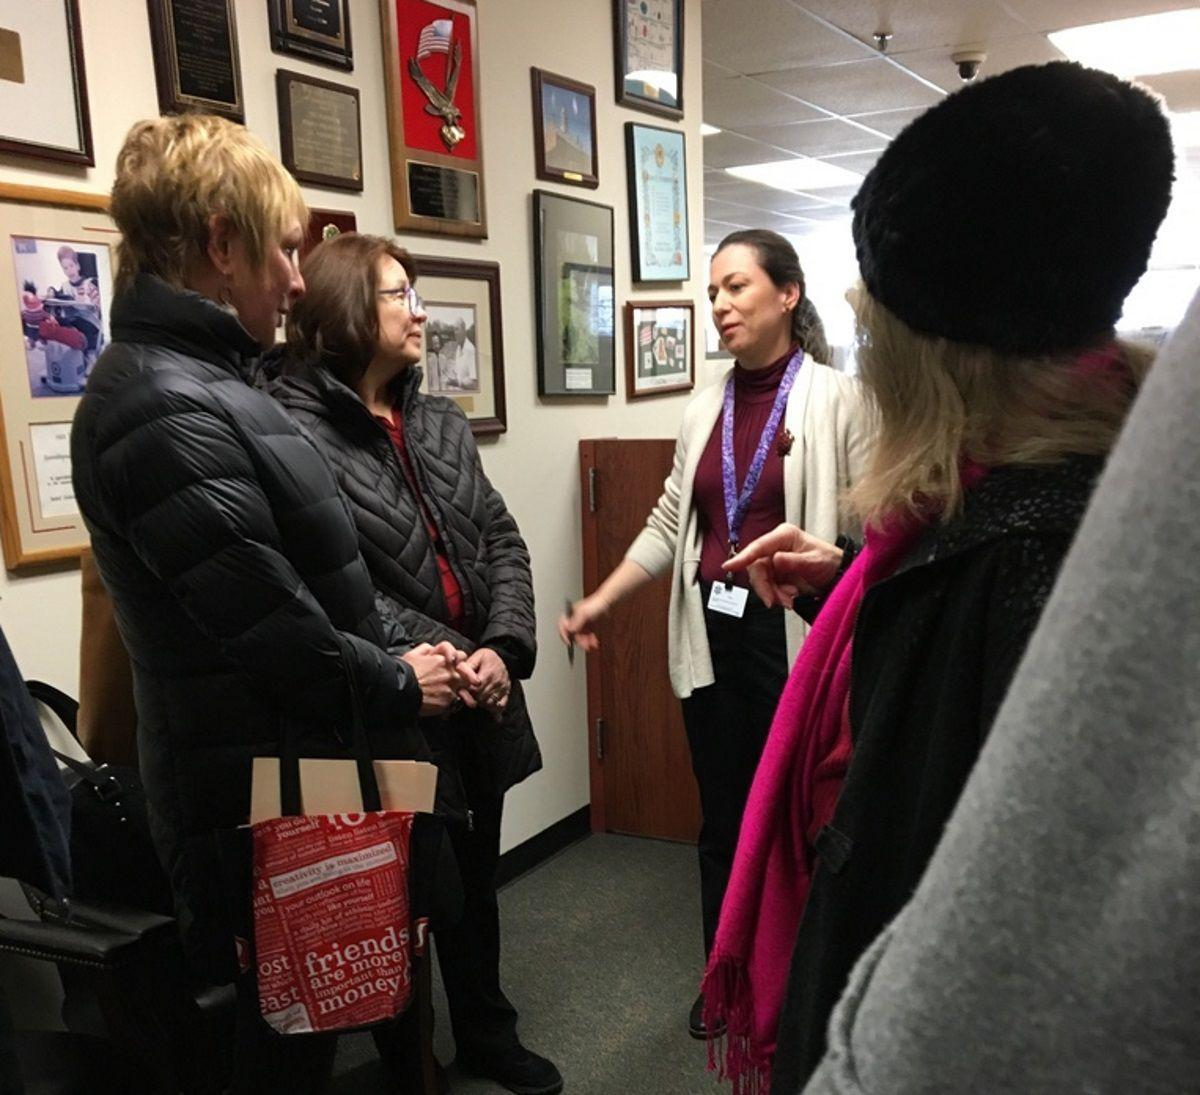 Indivisible Group at Frelinghuysen's Morristown Office